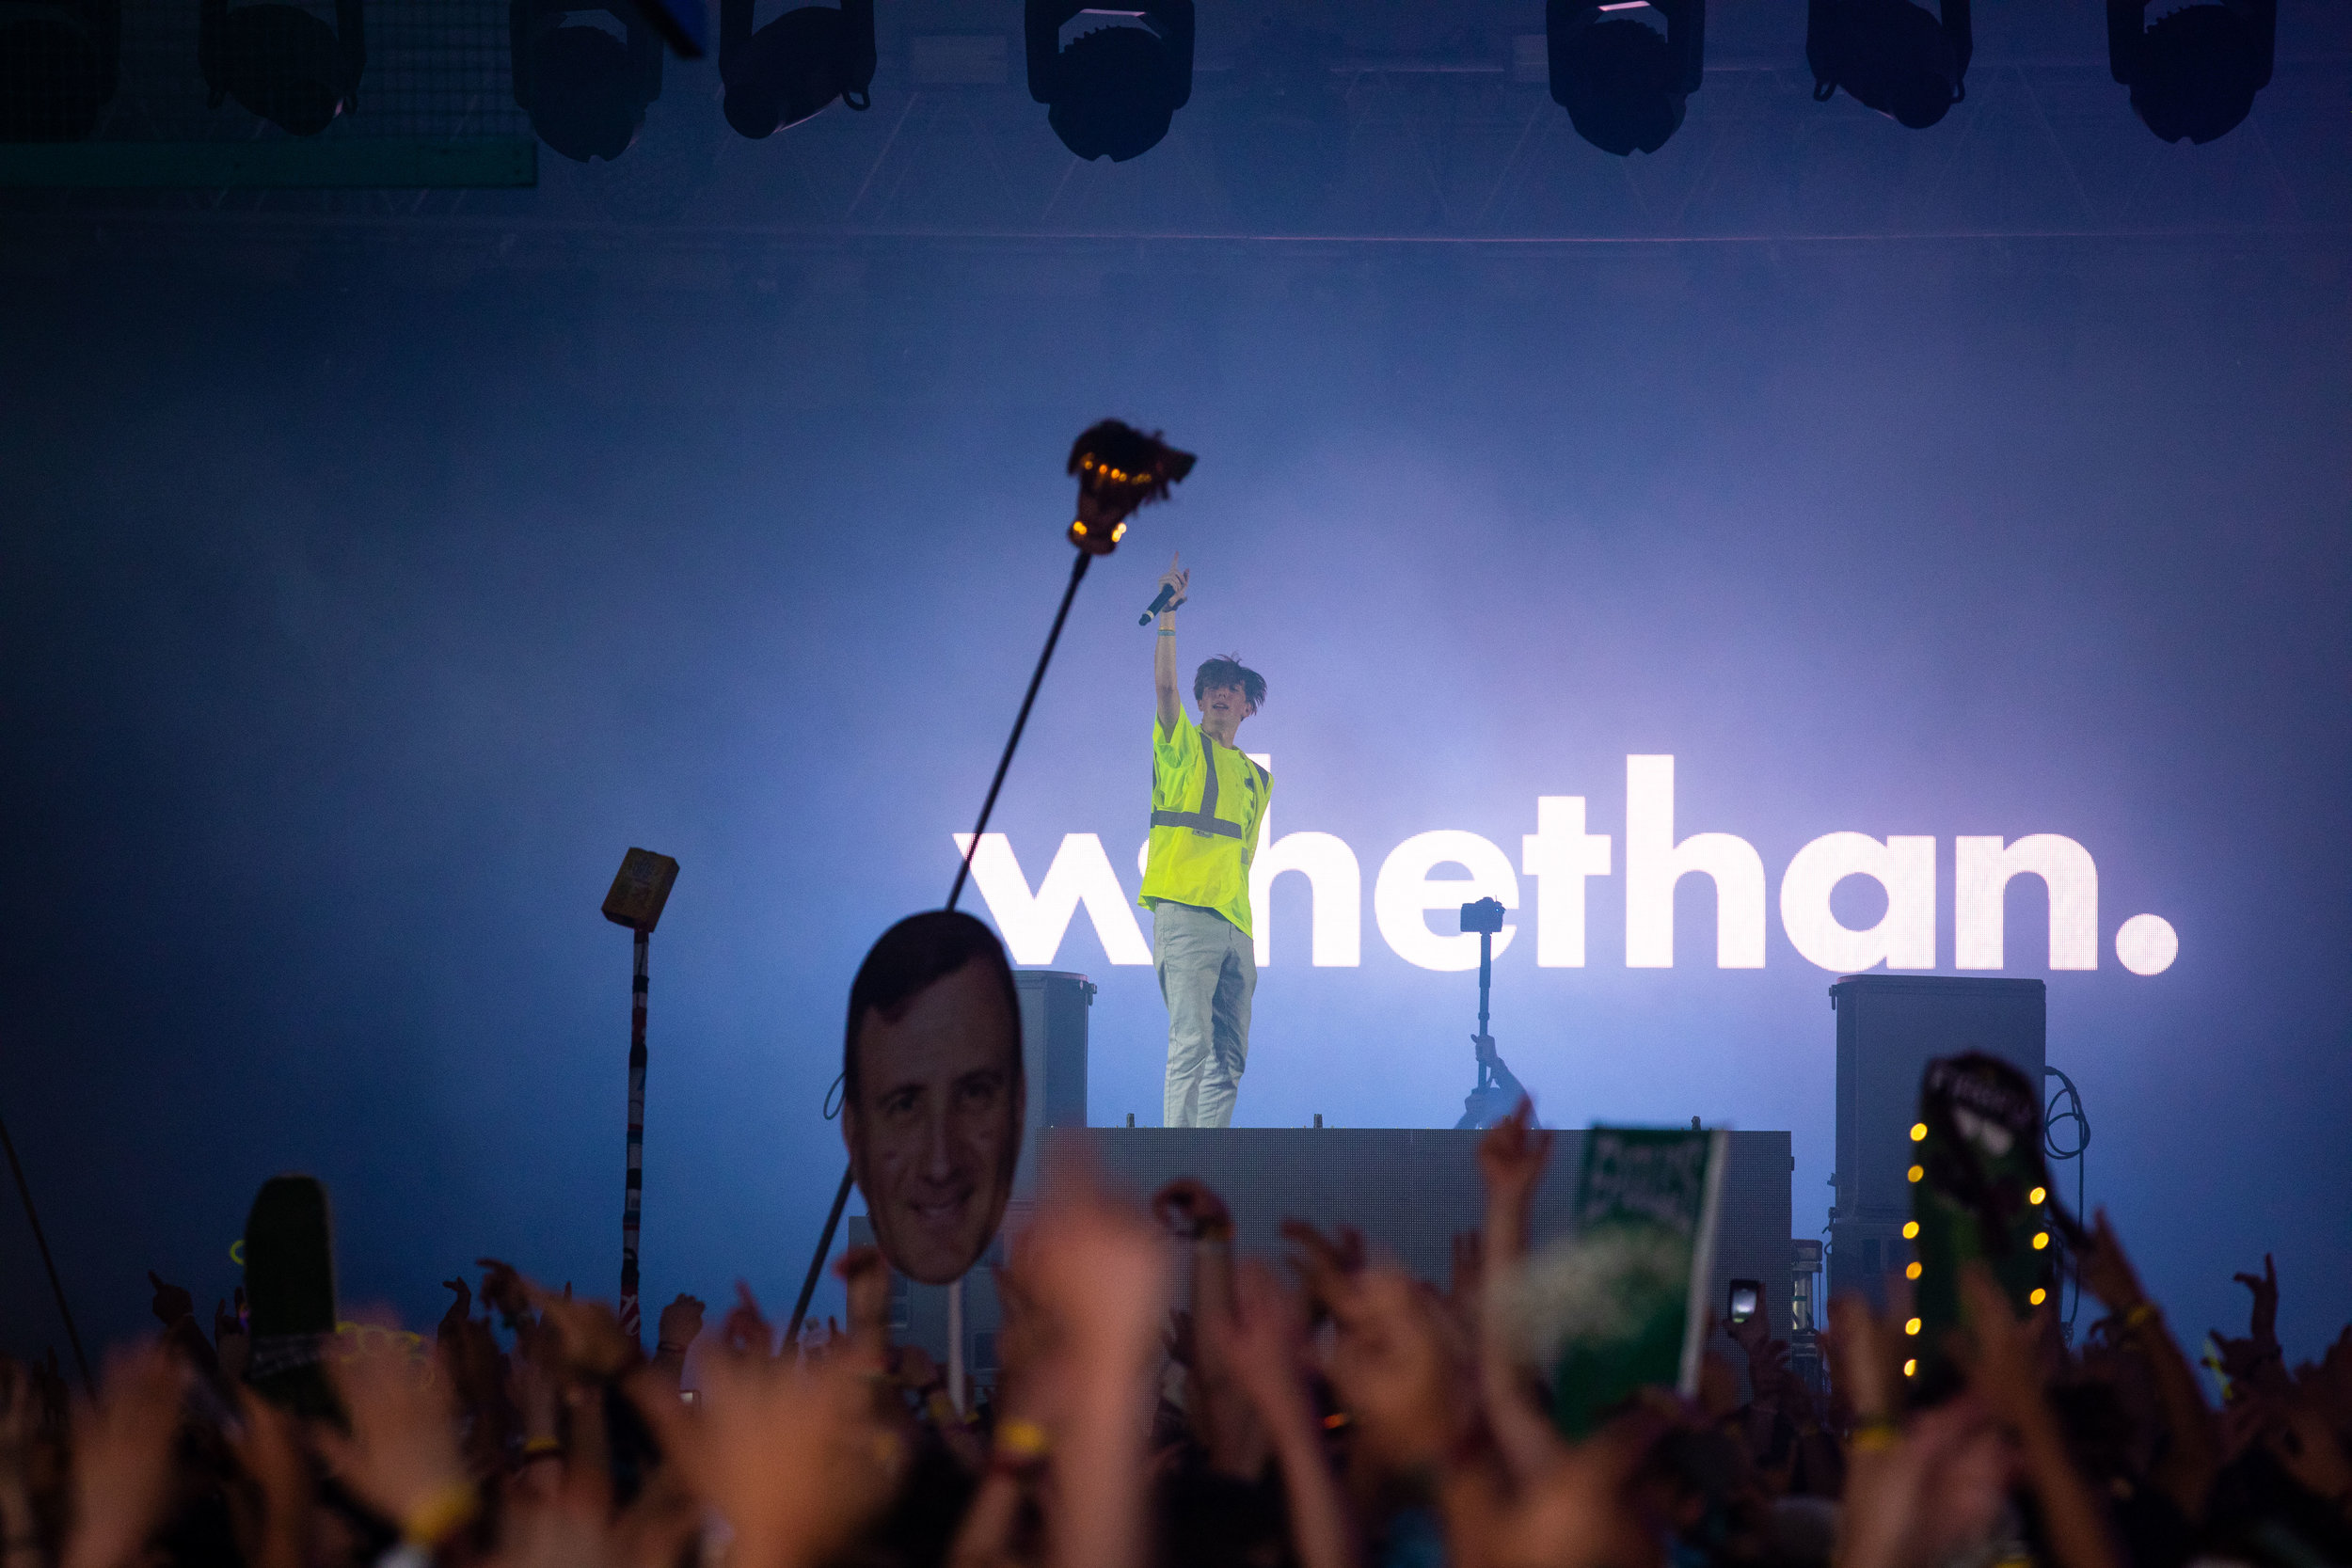 Poulos-Firefly2018-Whethan-7.jpg